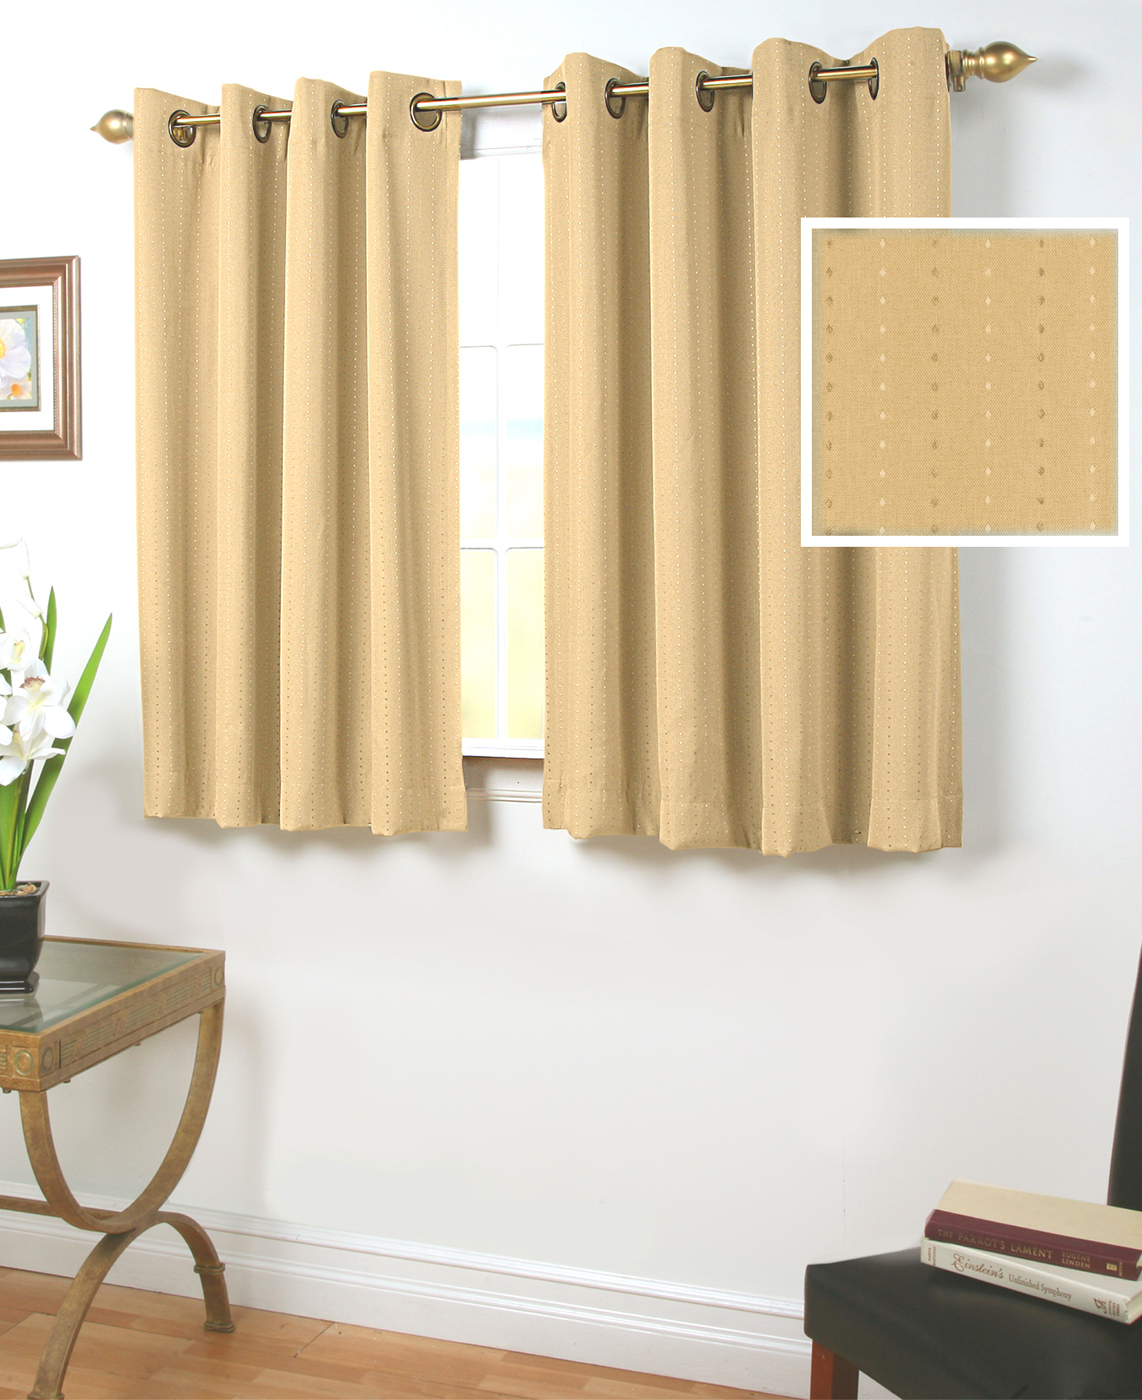 36 Inch Room Darkening Curtains 45 Inch Long Curtains Thecurtainshop